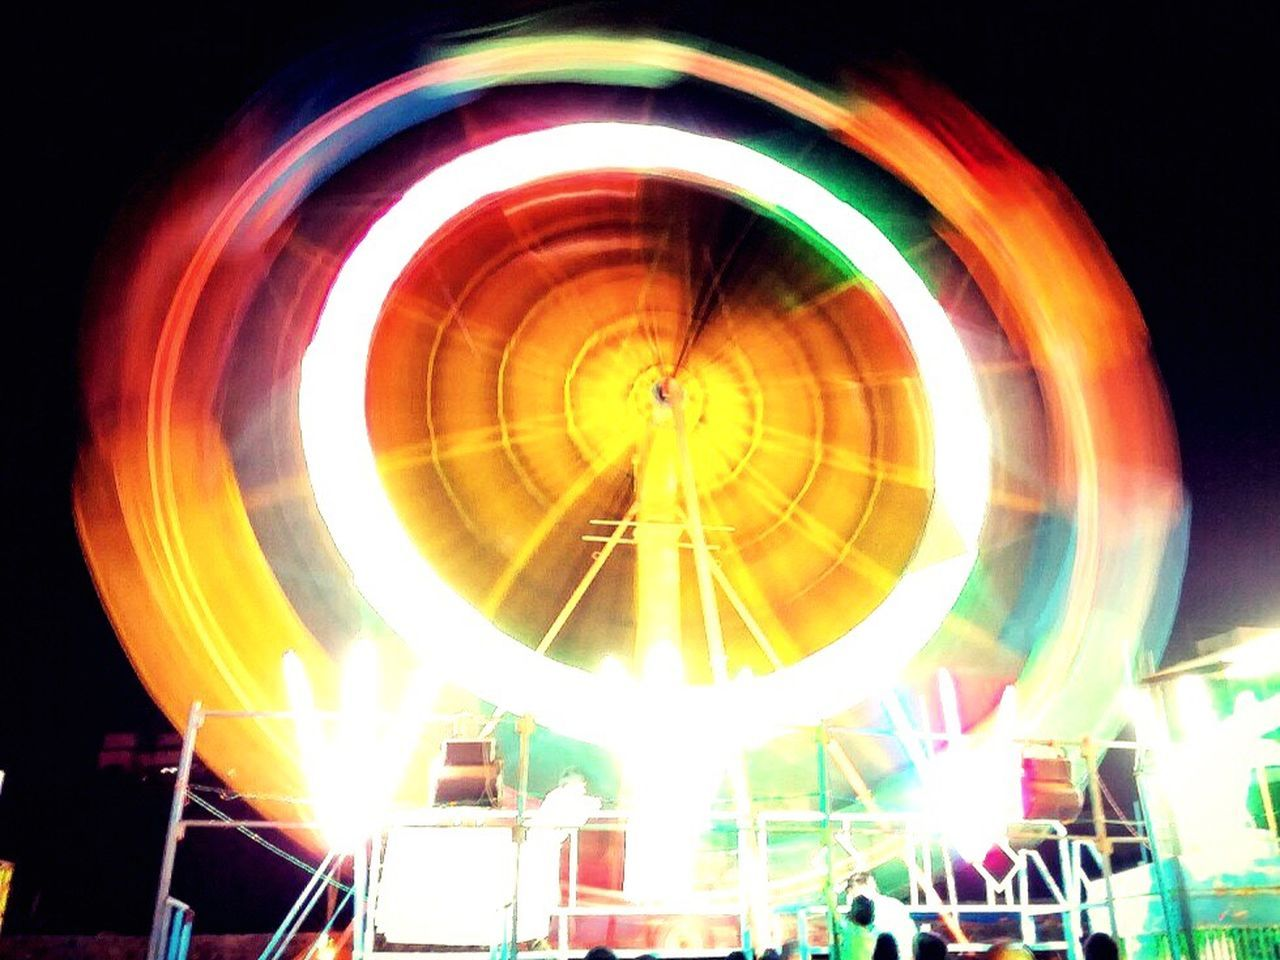 Fair Multi Colored Blurred Motion Long Exposure Illuminated Motion Arts Culture And Entertainment Nightlife Light Effect Night EyeEmBestPics Eyeemcollection India Eyeem Photography Eyeemphotography Phonephotography EyeEm Circle No People Fun